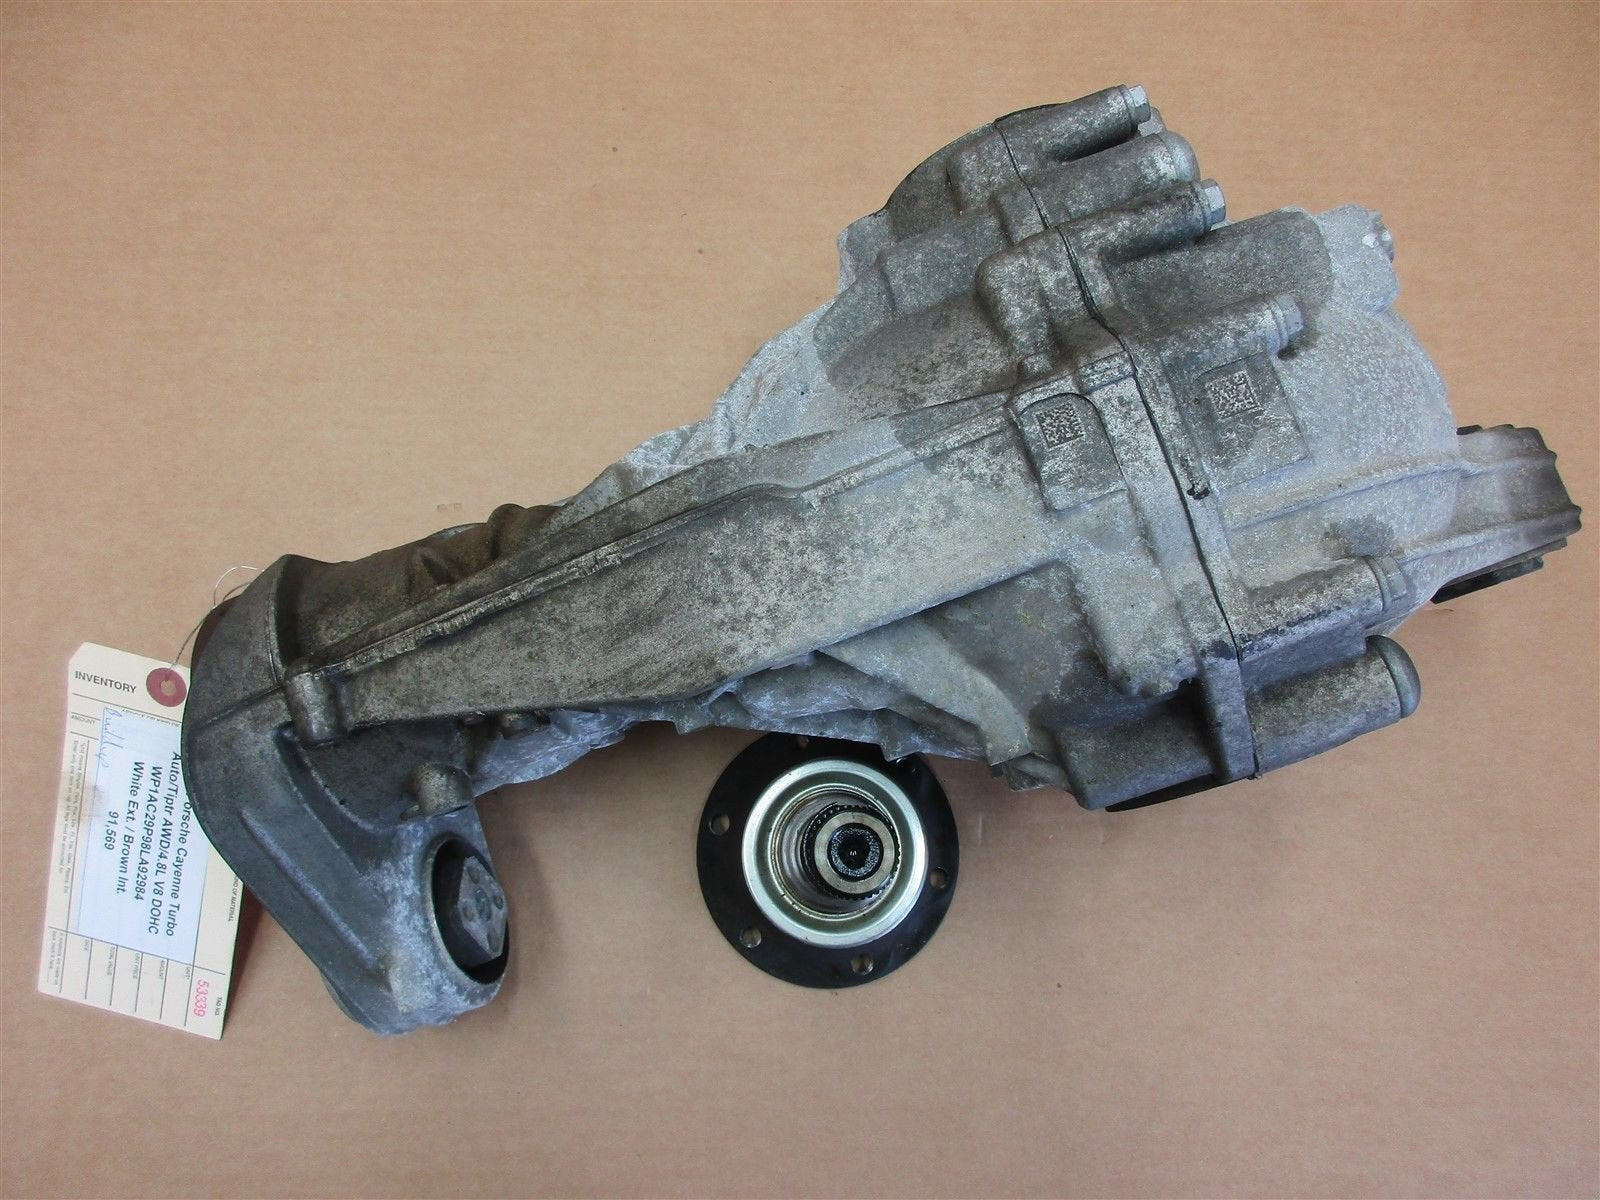 08 Cayenne Turbo AWD Porsche 957 FRONT DIFFERENTIAL 4460310021 91,569